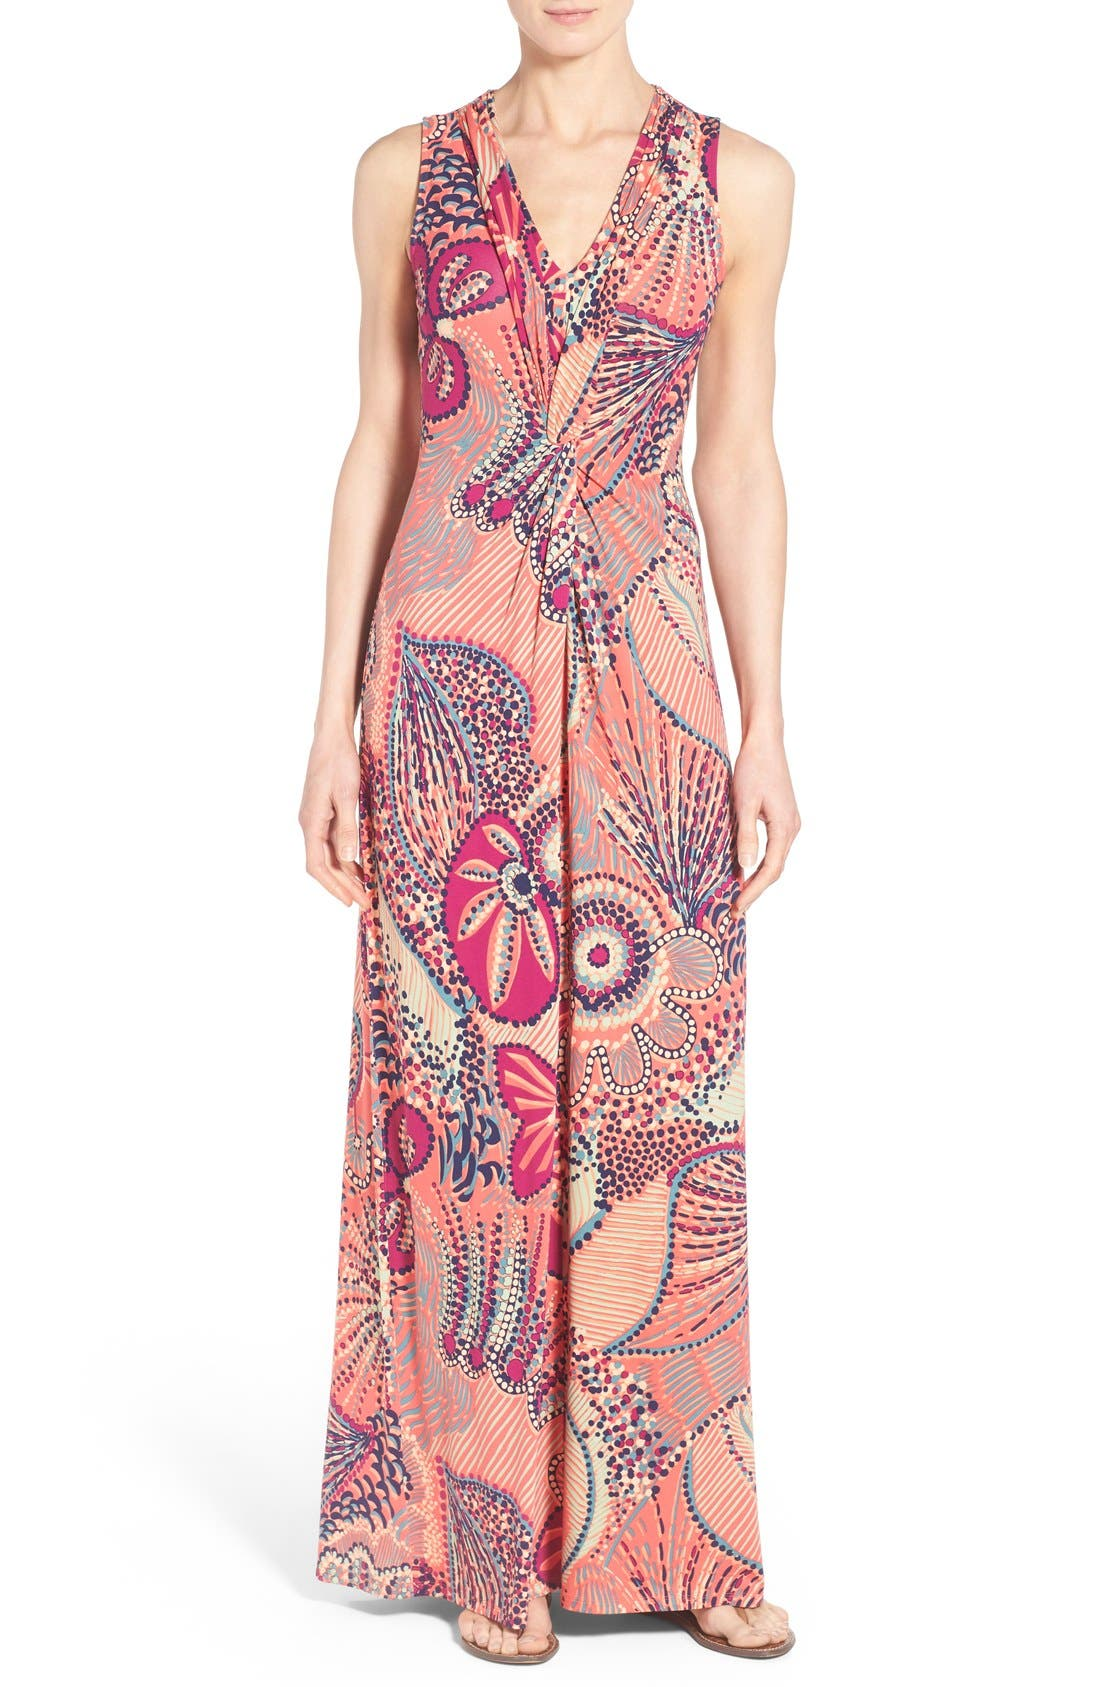 'Carnival Lights' Print V-Neck Maxi Dress,                             Main thumbnail 1, color,                             950